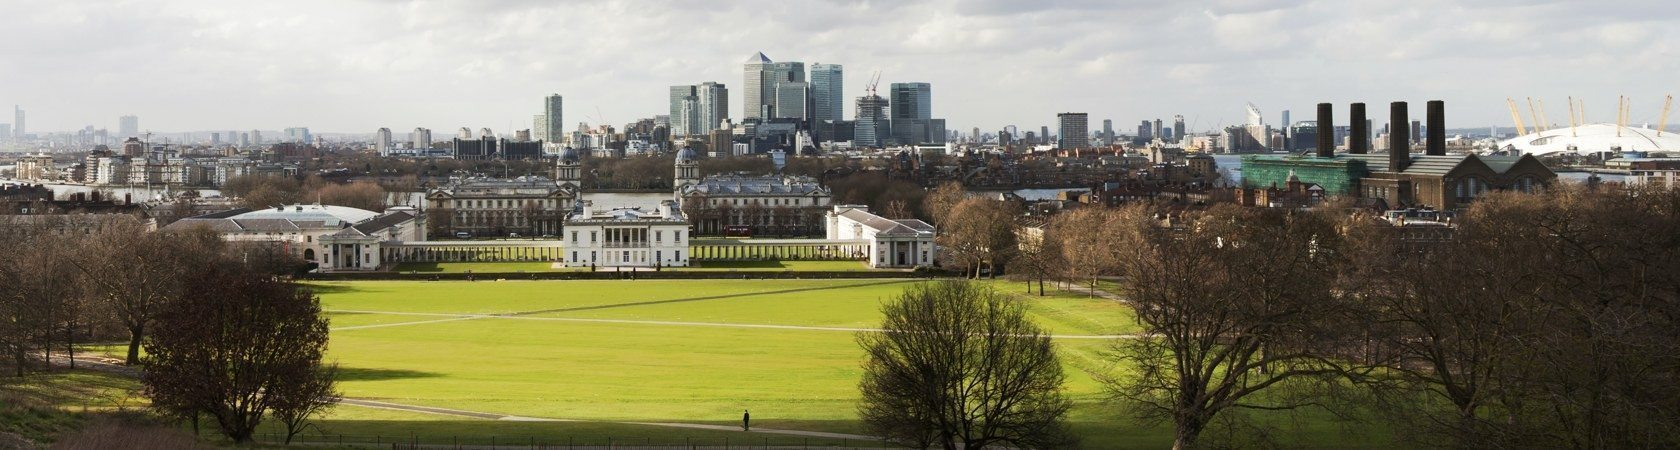 View over Greenwich London